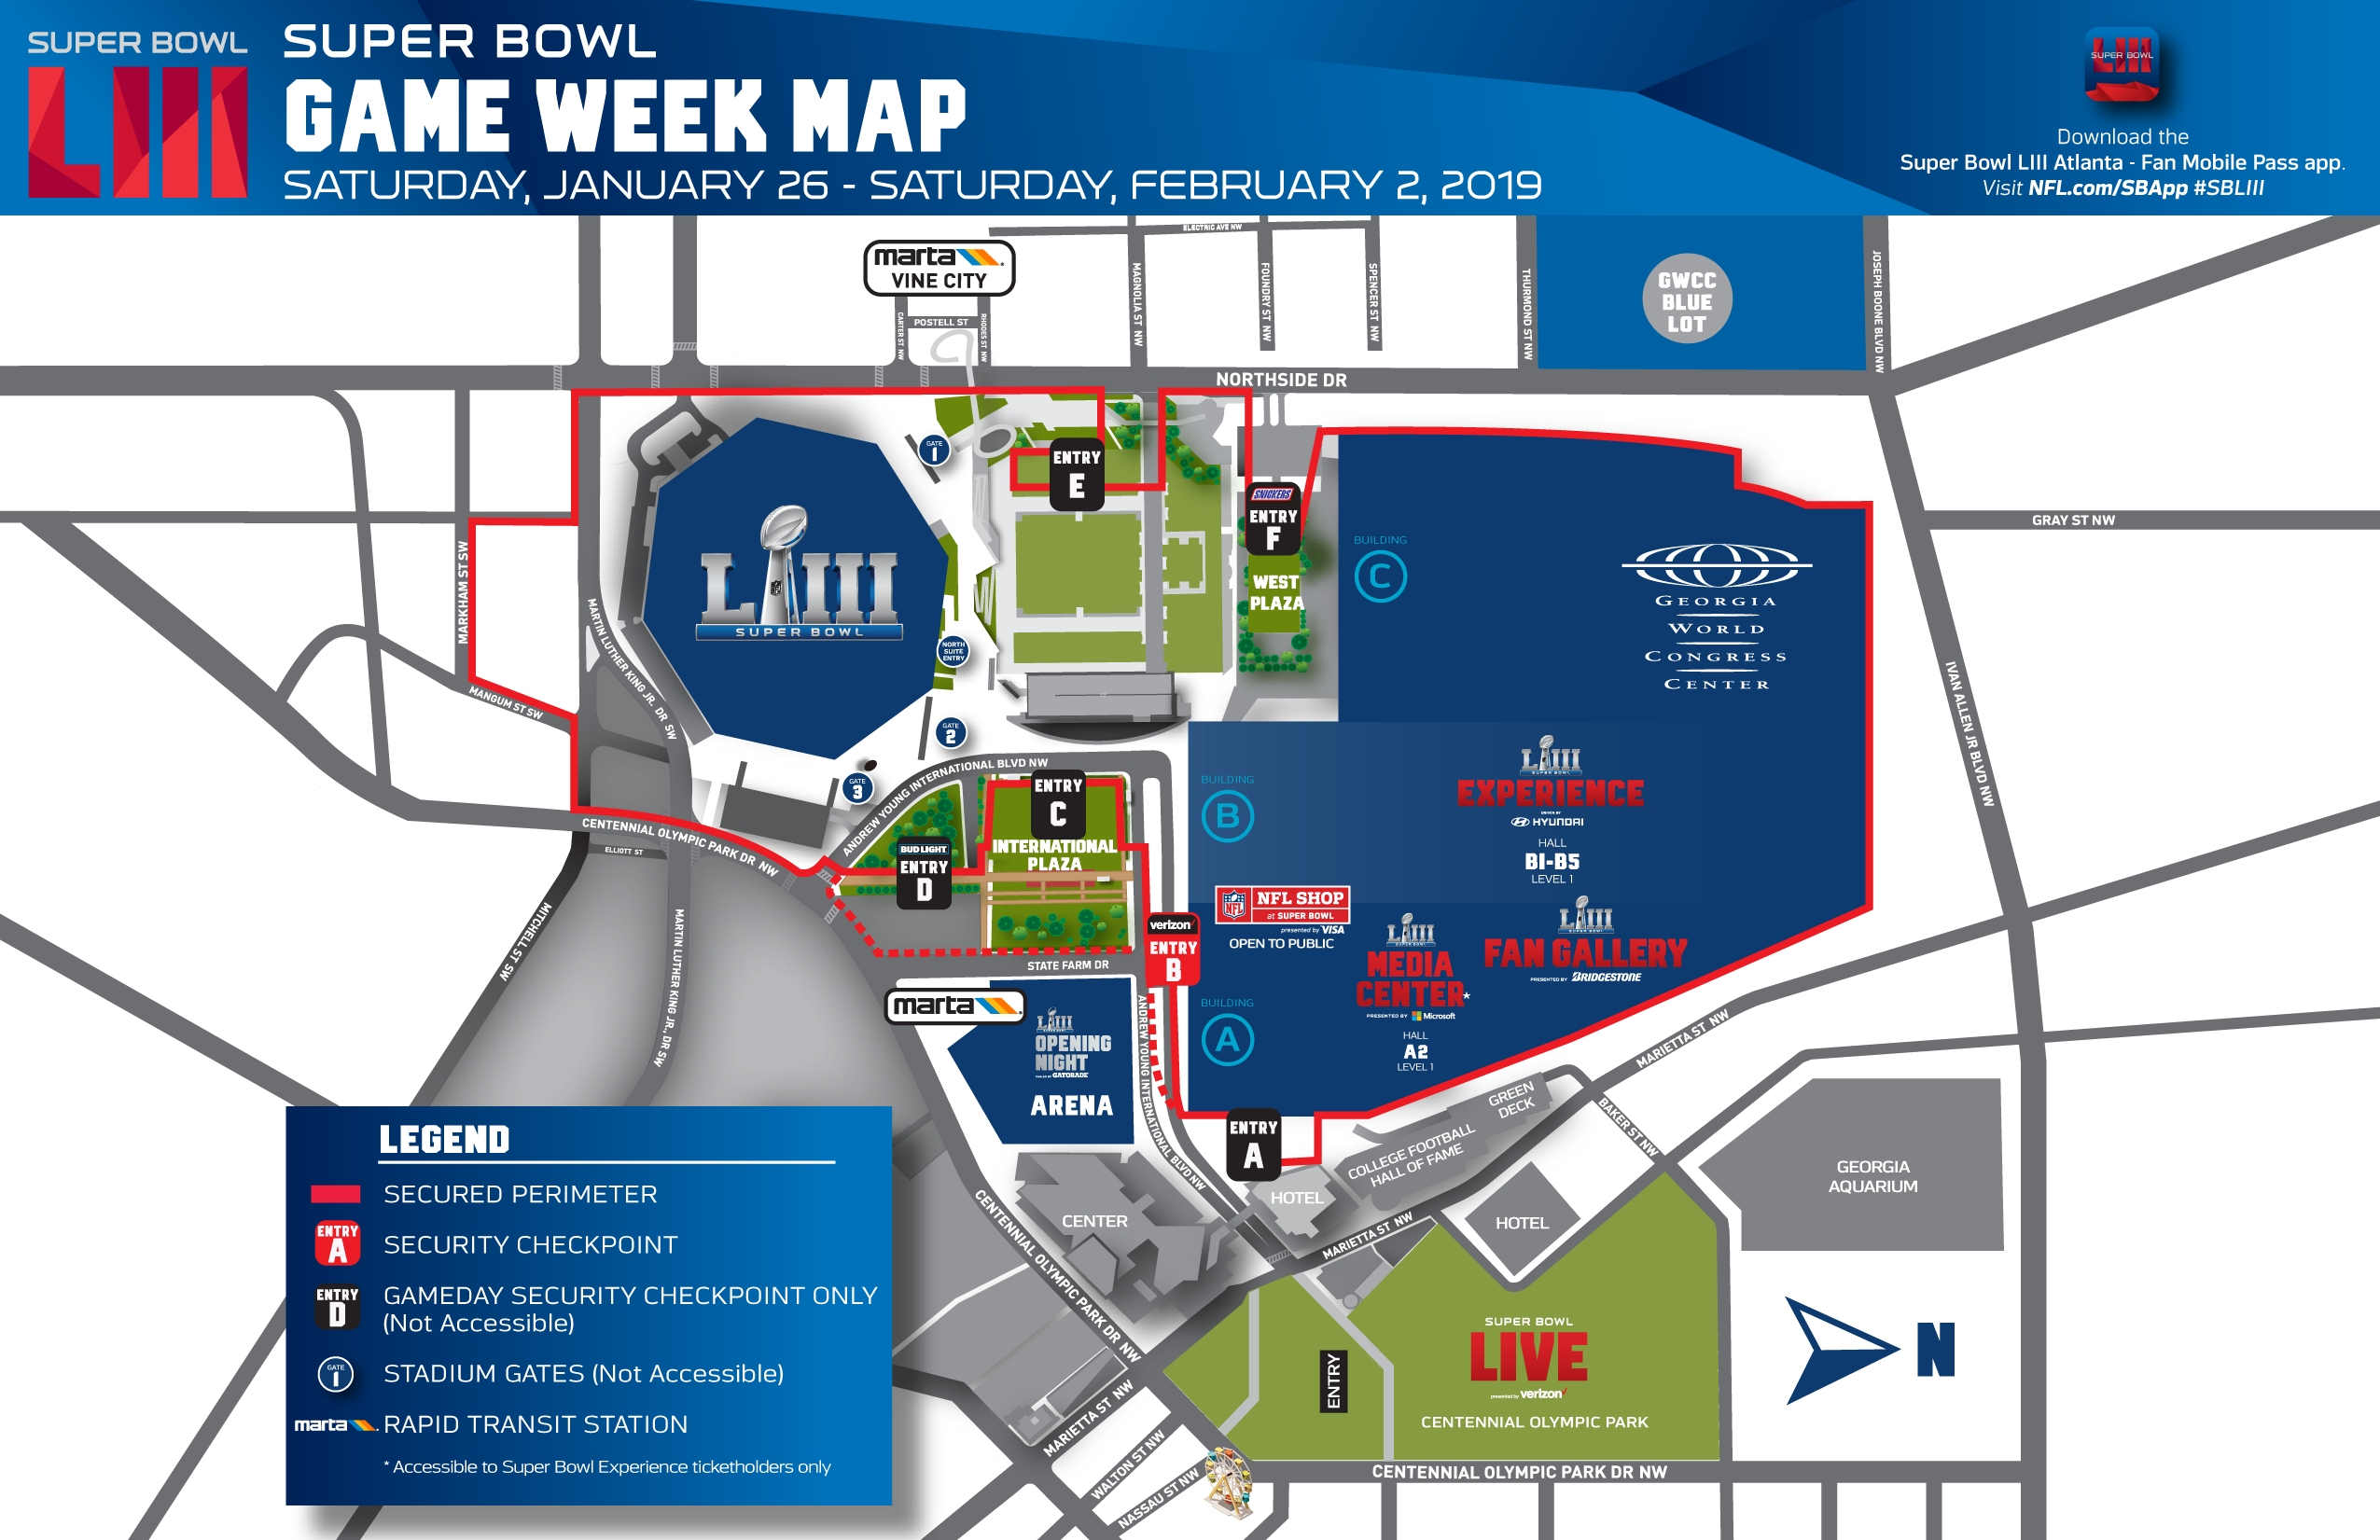 Super Bowl Experience | Nfl | Nfl in Super Bowl 53 Map